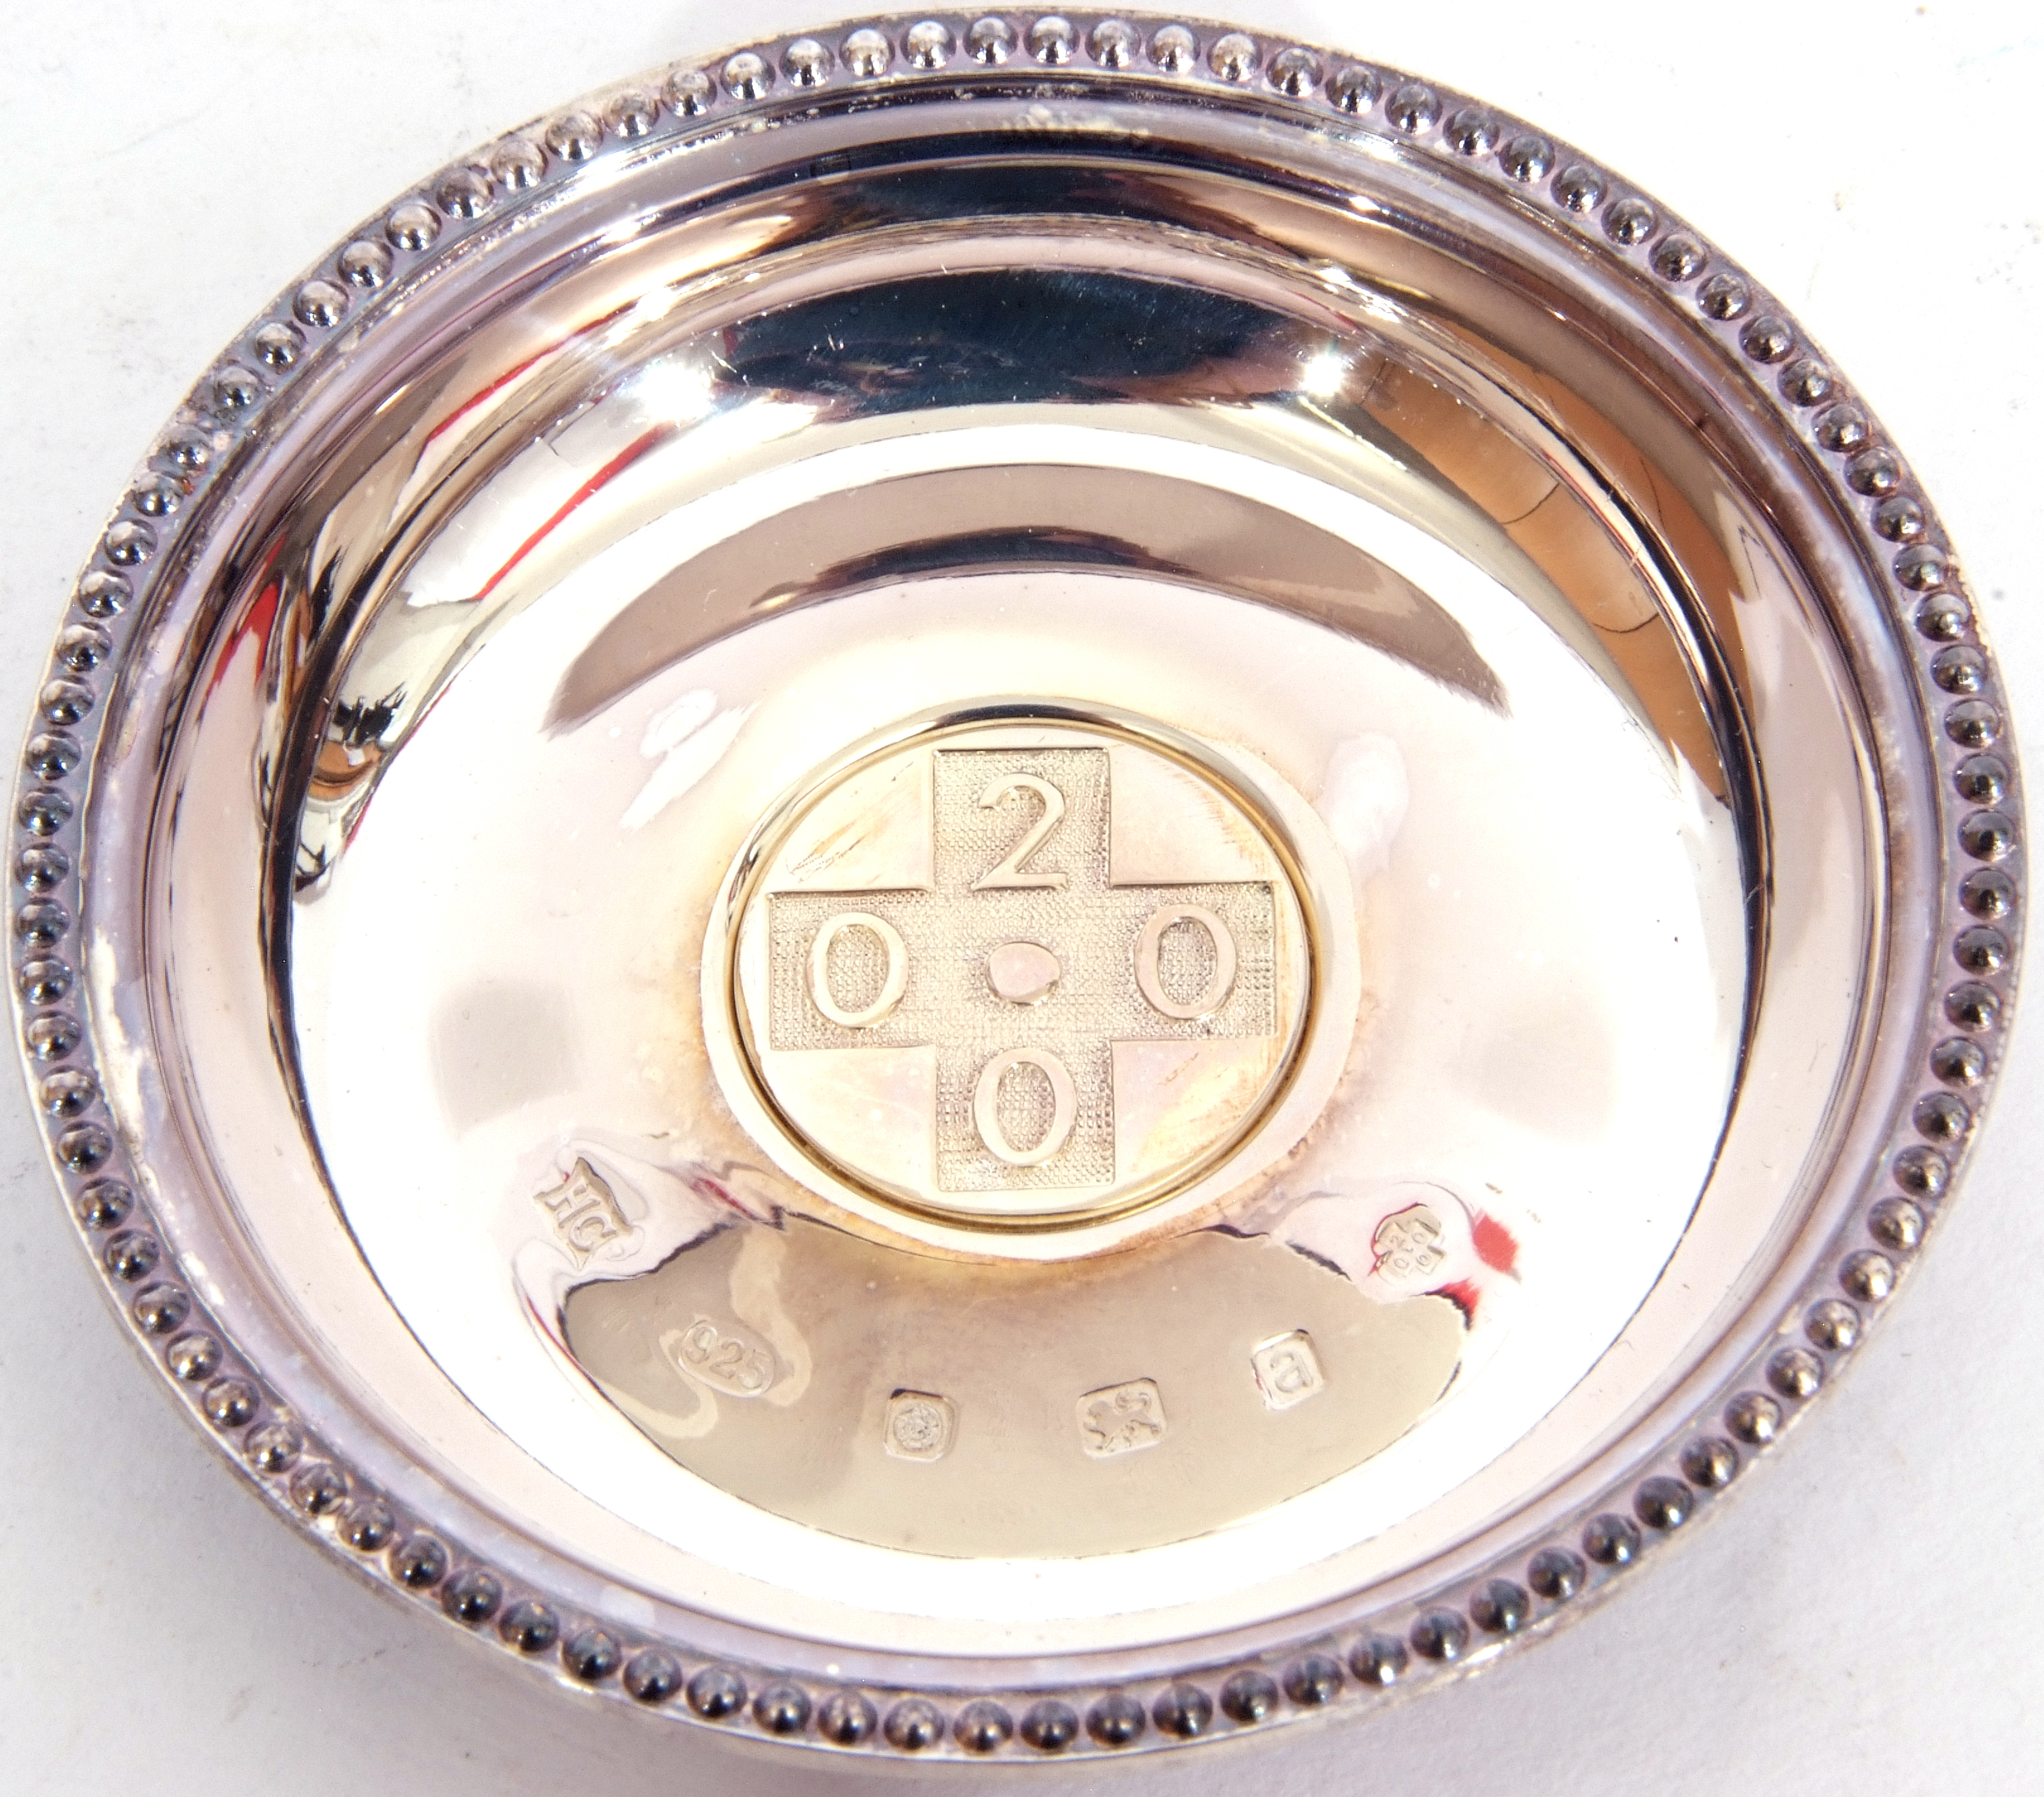 """Hallmarked silver miniature circular dish, """"2000"""" together with a French agricultural medallion - Image 5 of 9"""